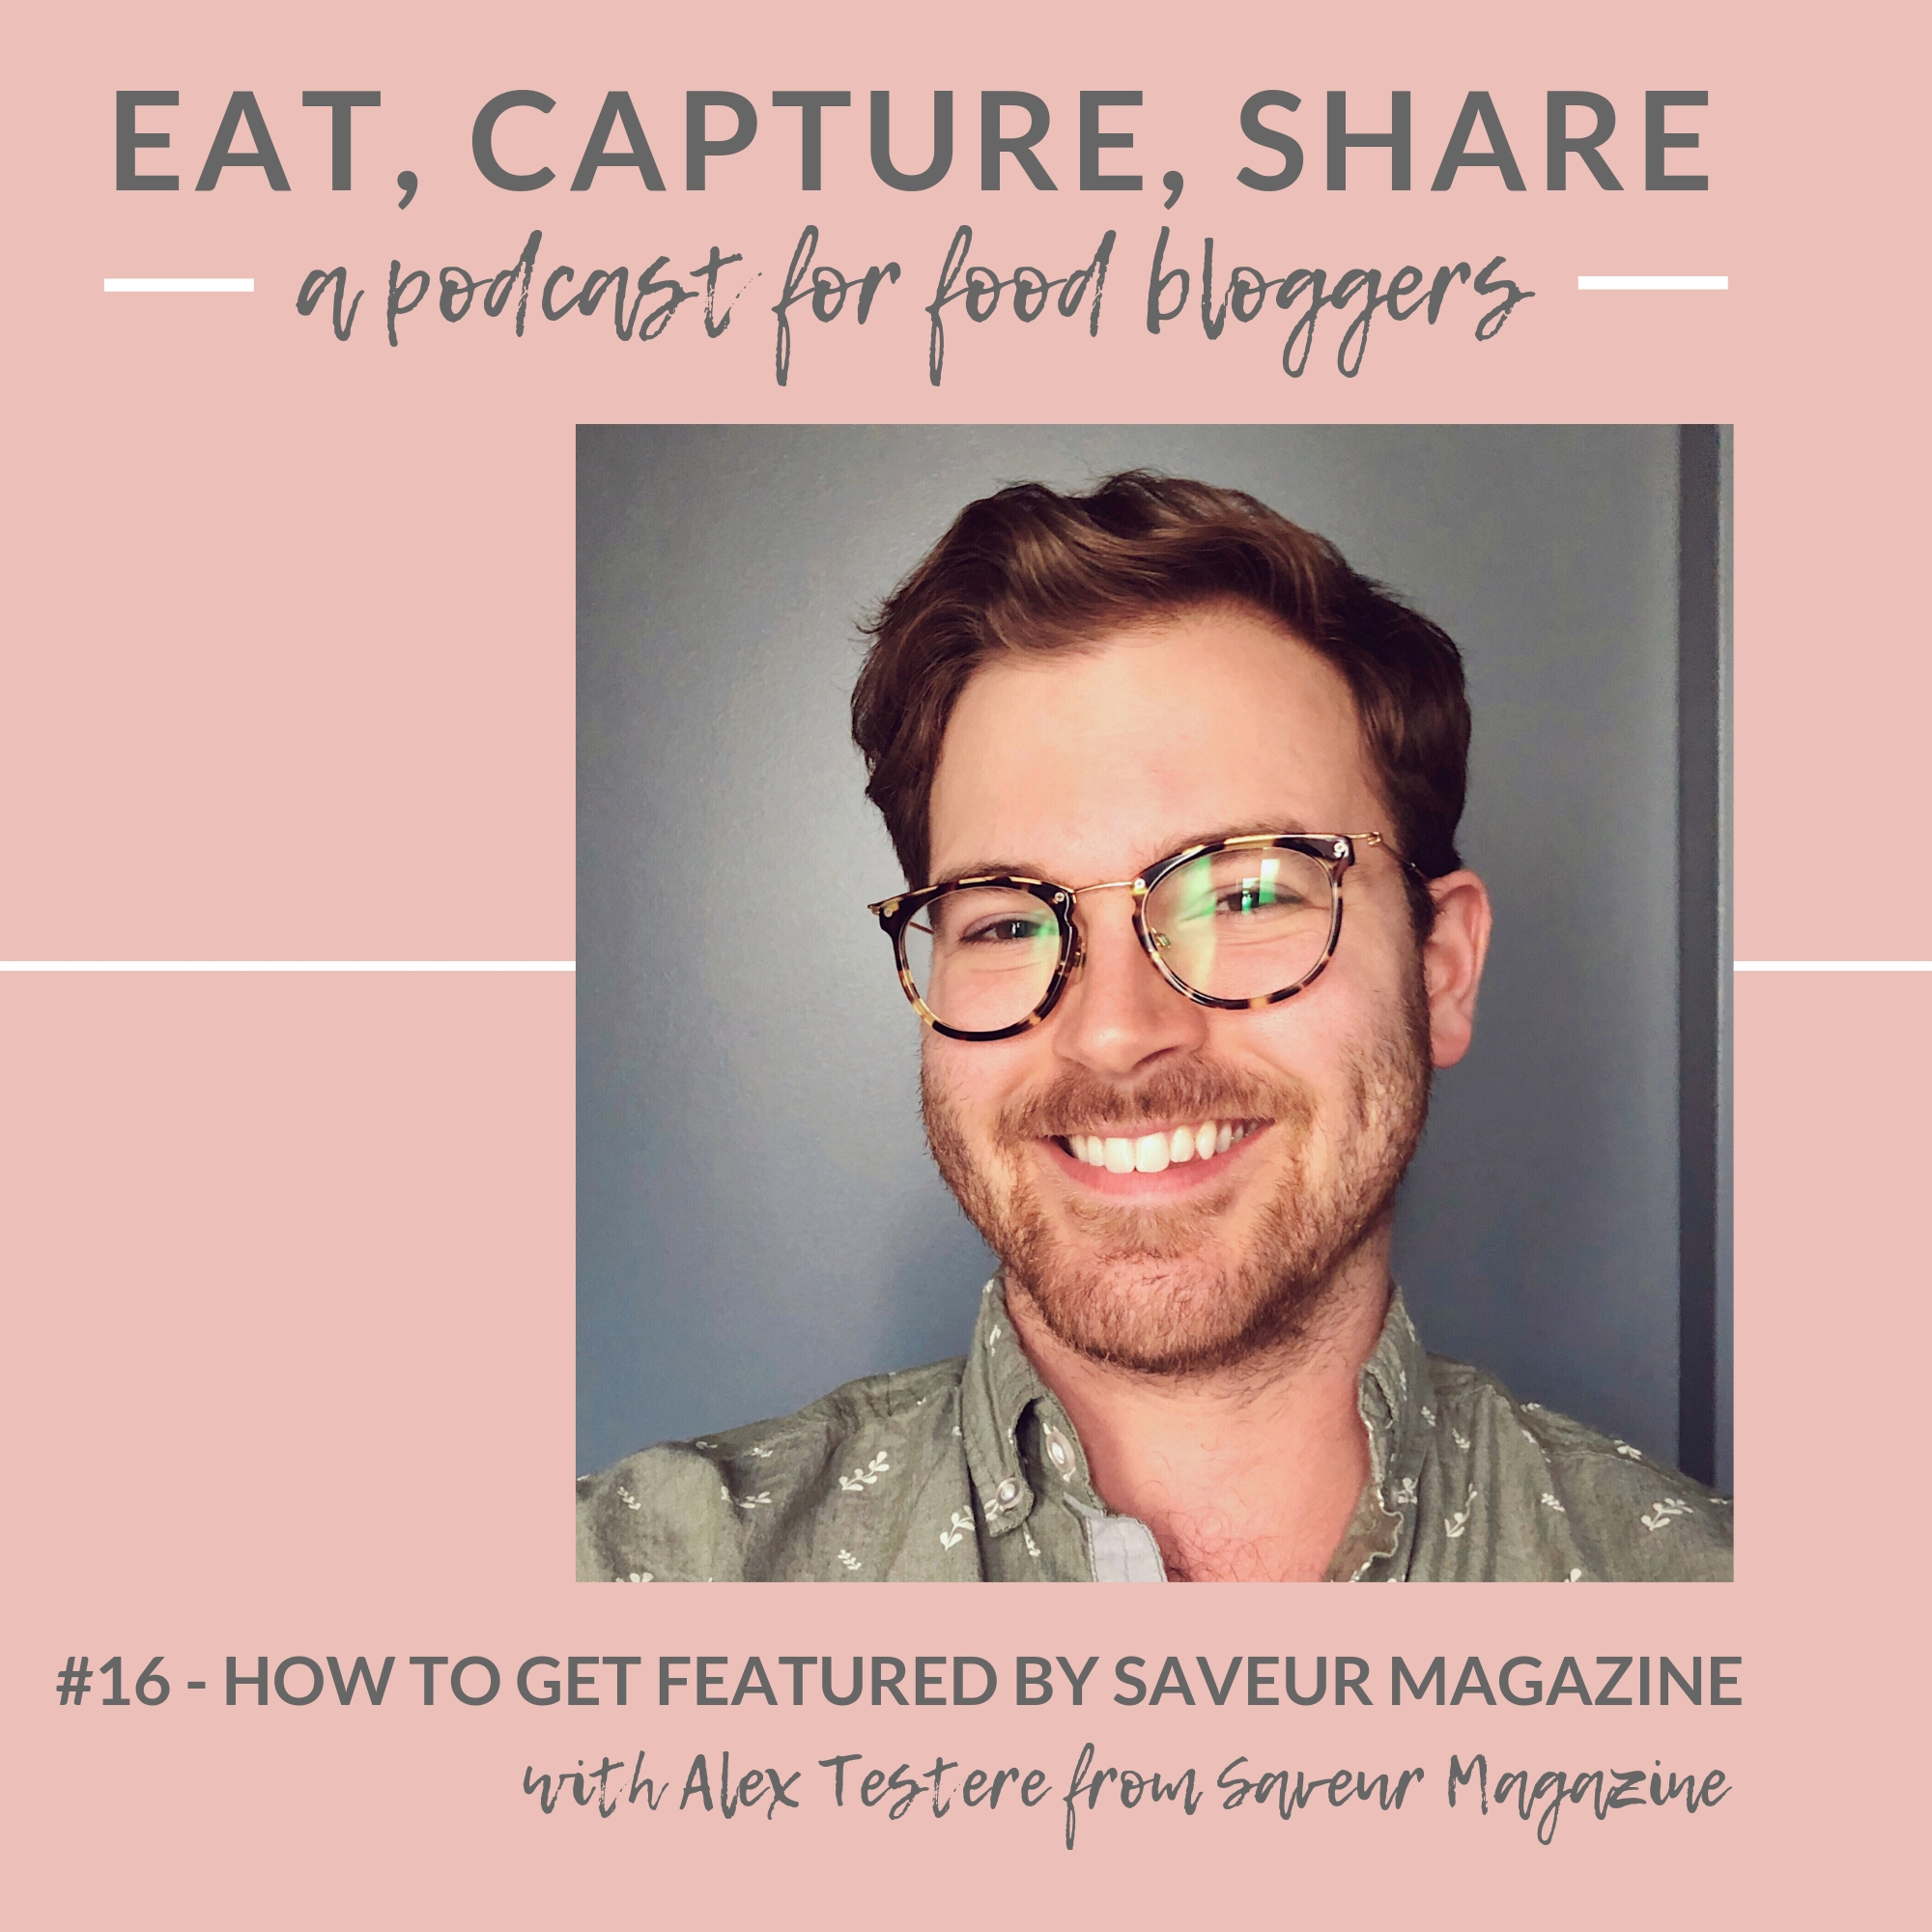 16 - HOW TO GET FEATURED BY SAVEUR MAGAZINE — a vegan food